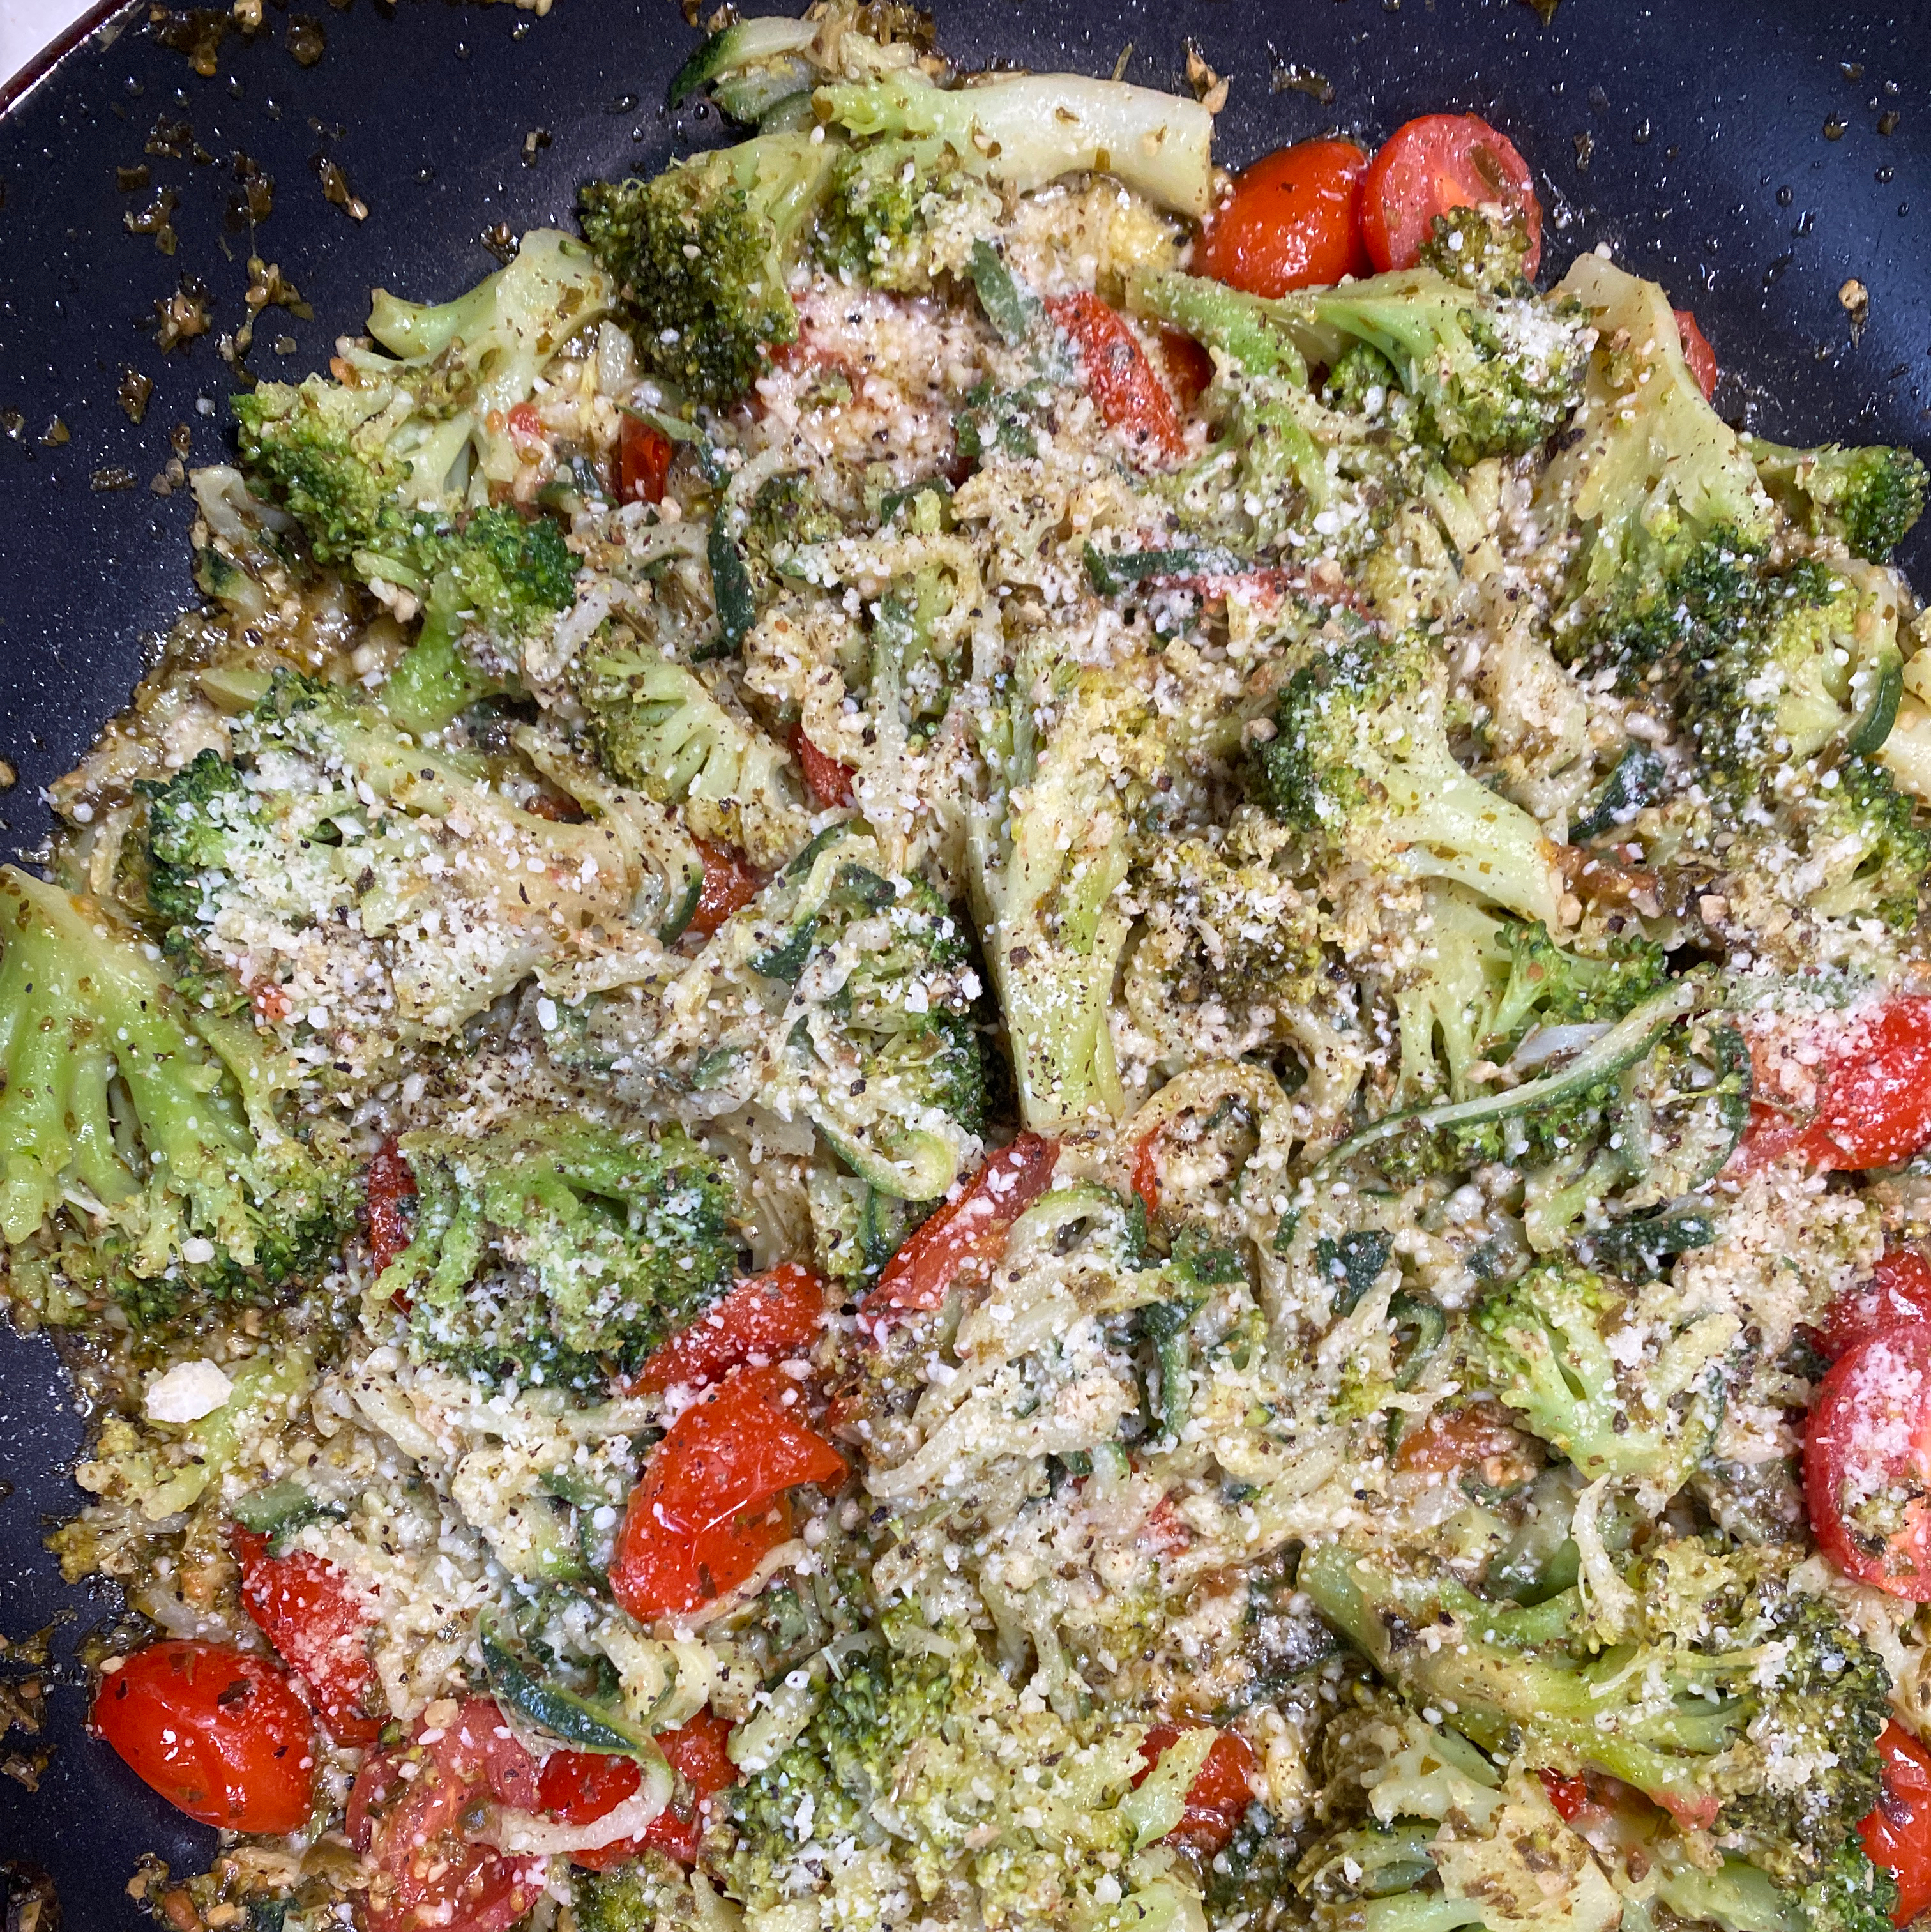 Pesto Zucchini Noodles with Tomatoes and Broccoli dub